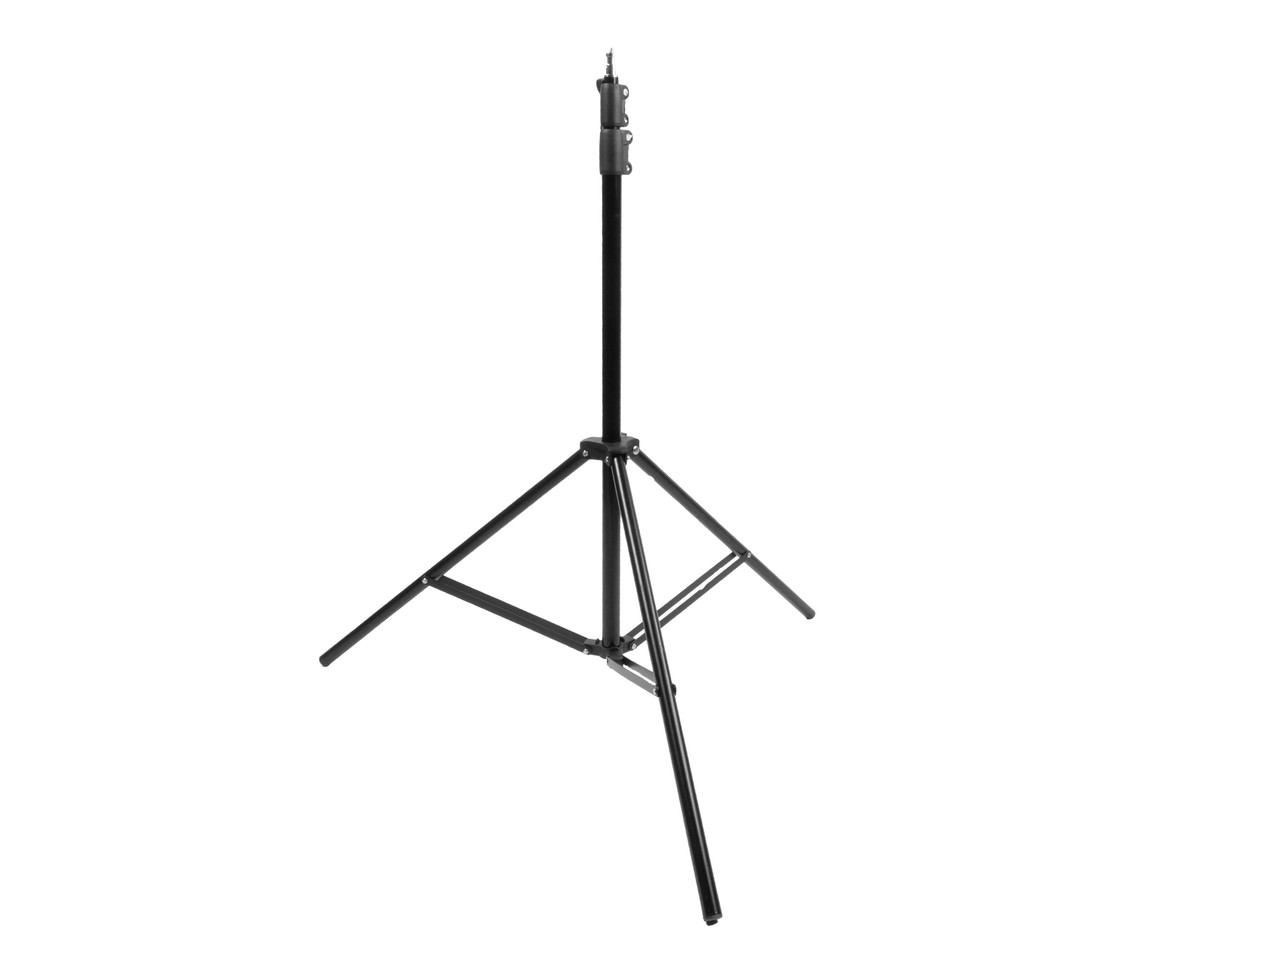 Teleprompter replacement Stand for Freestanding Model